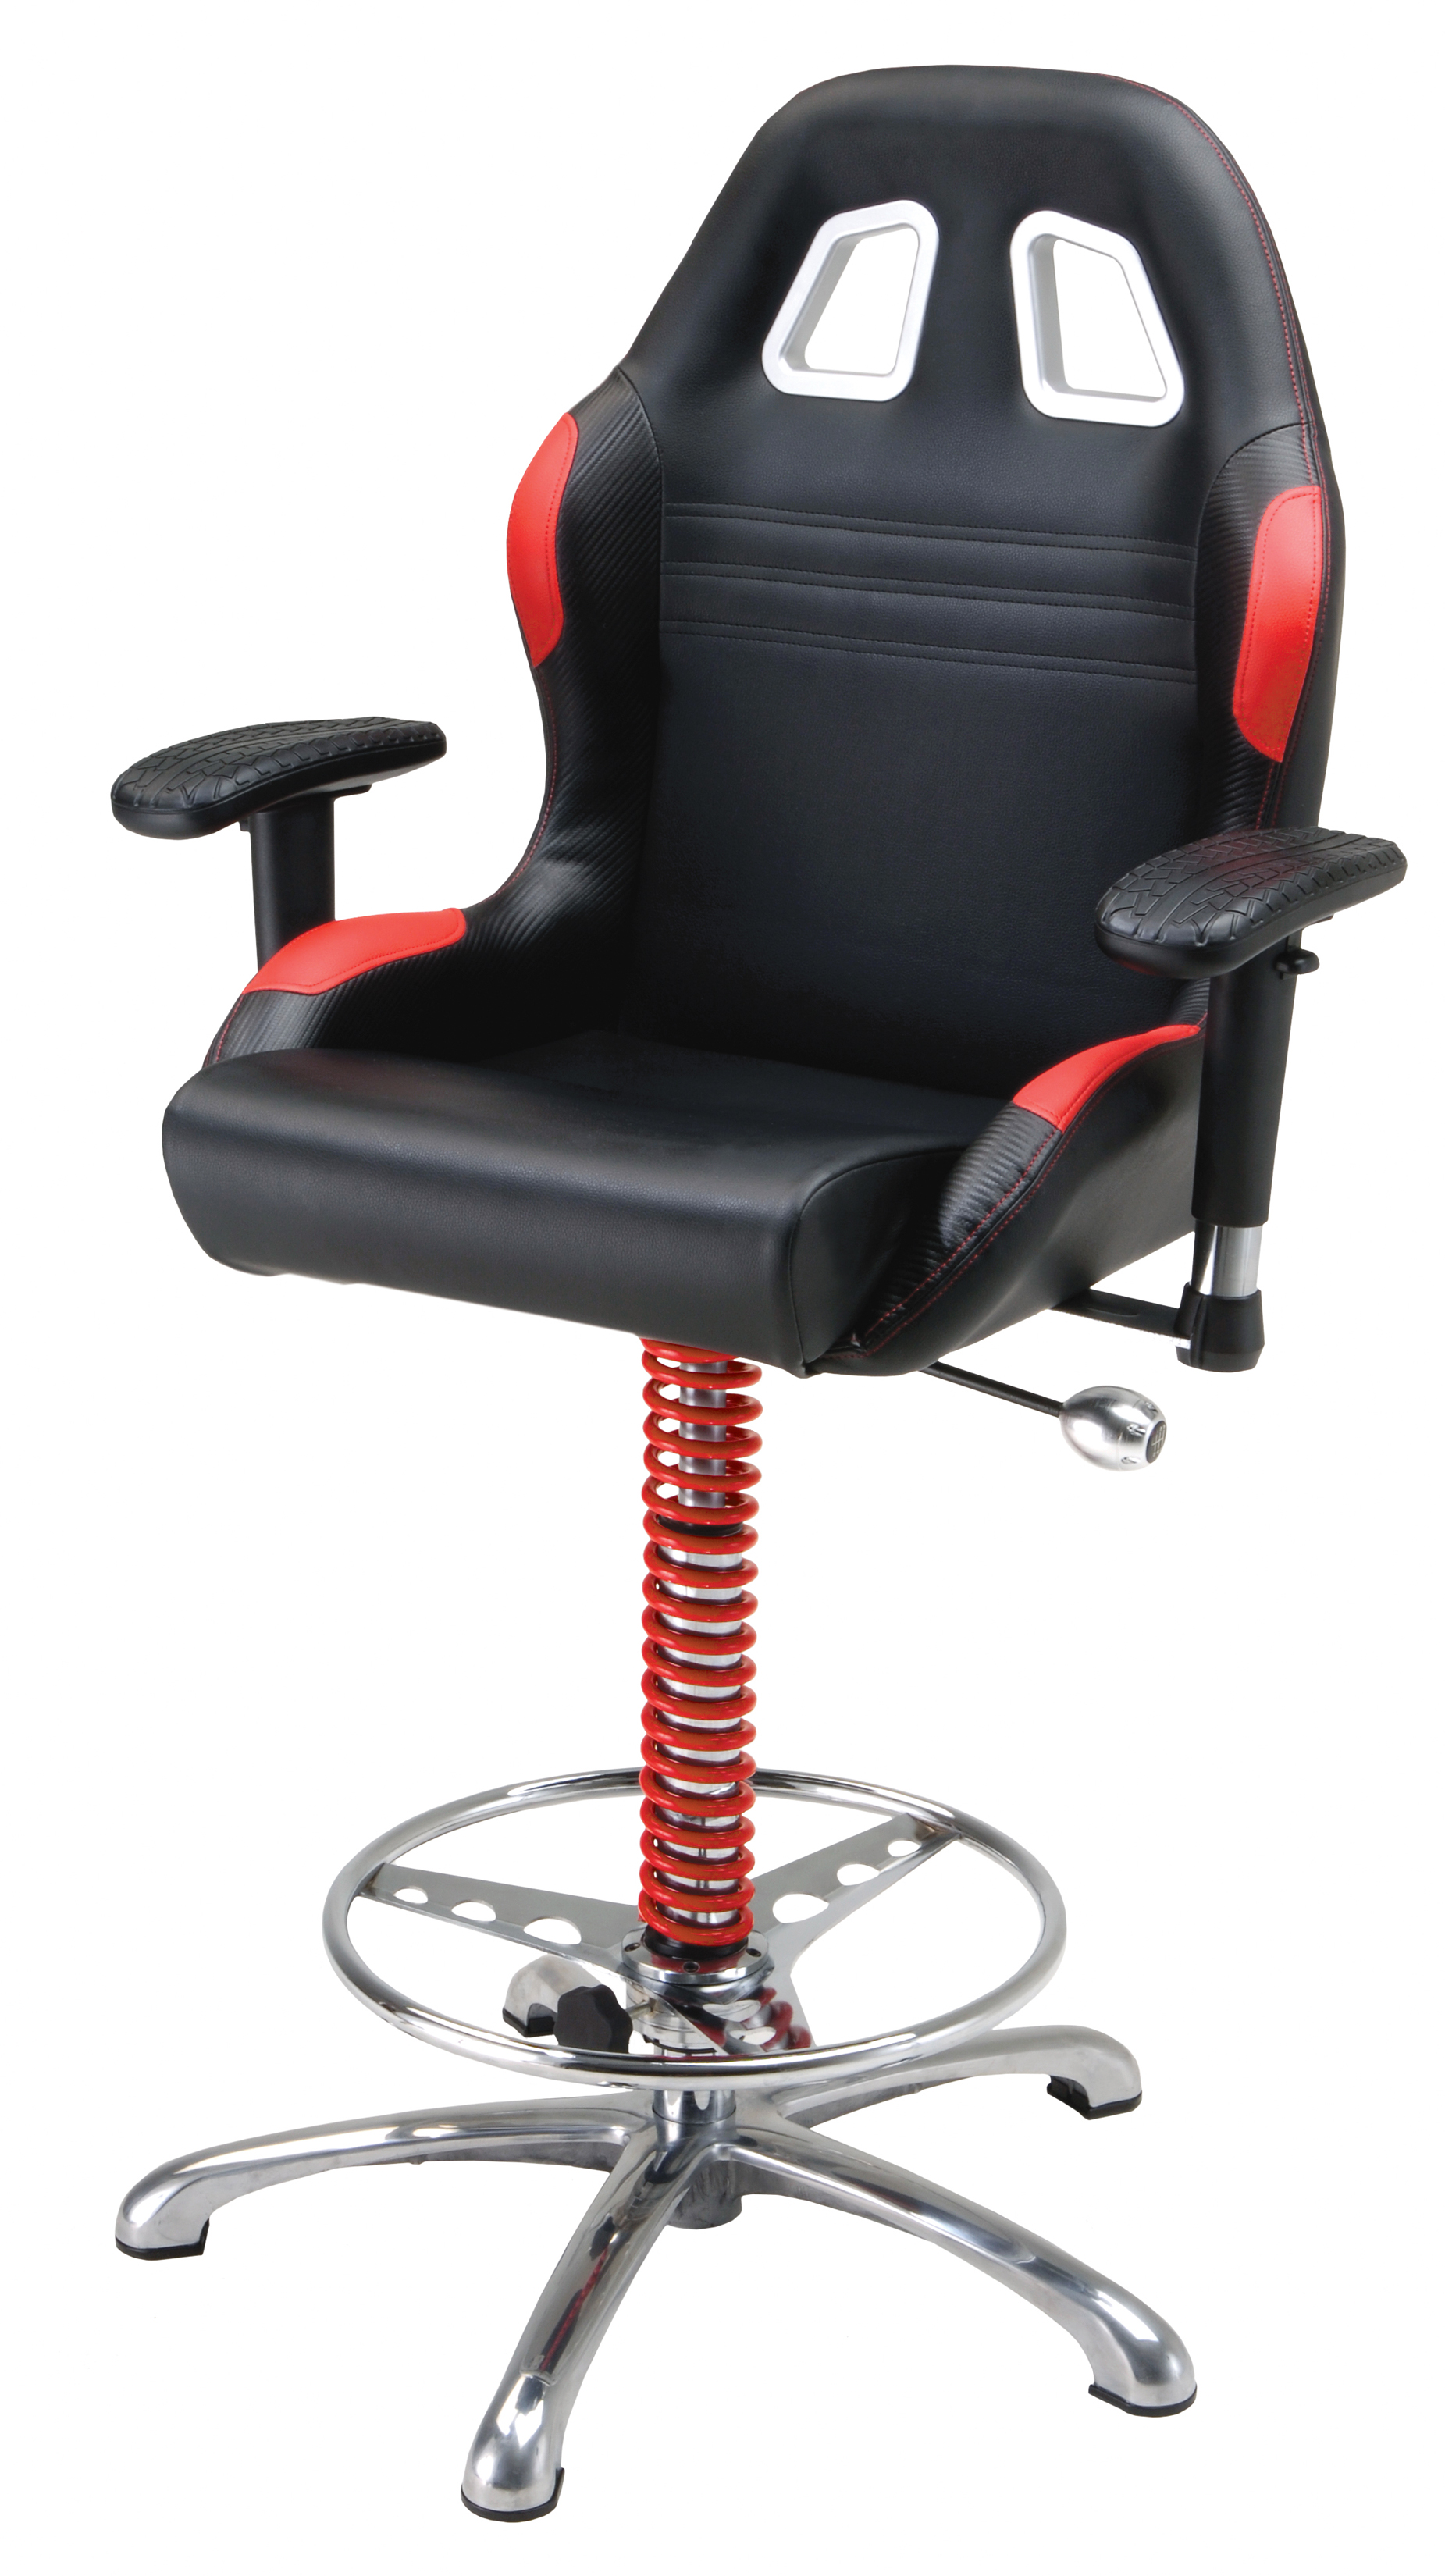 Pitstop Furniture By Intro Tech Automotive Crew Chief Bar Chair